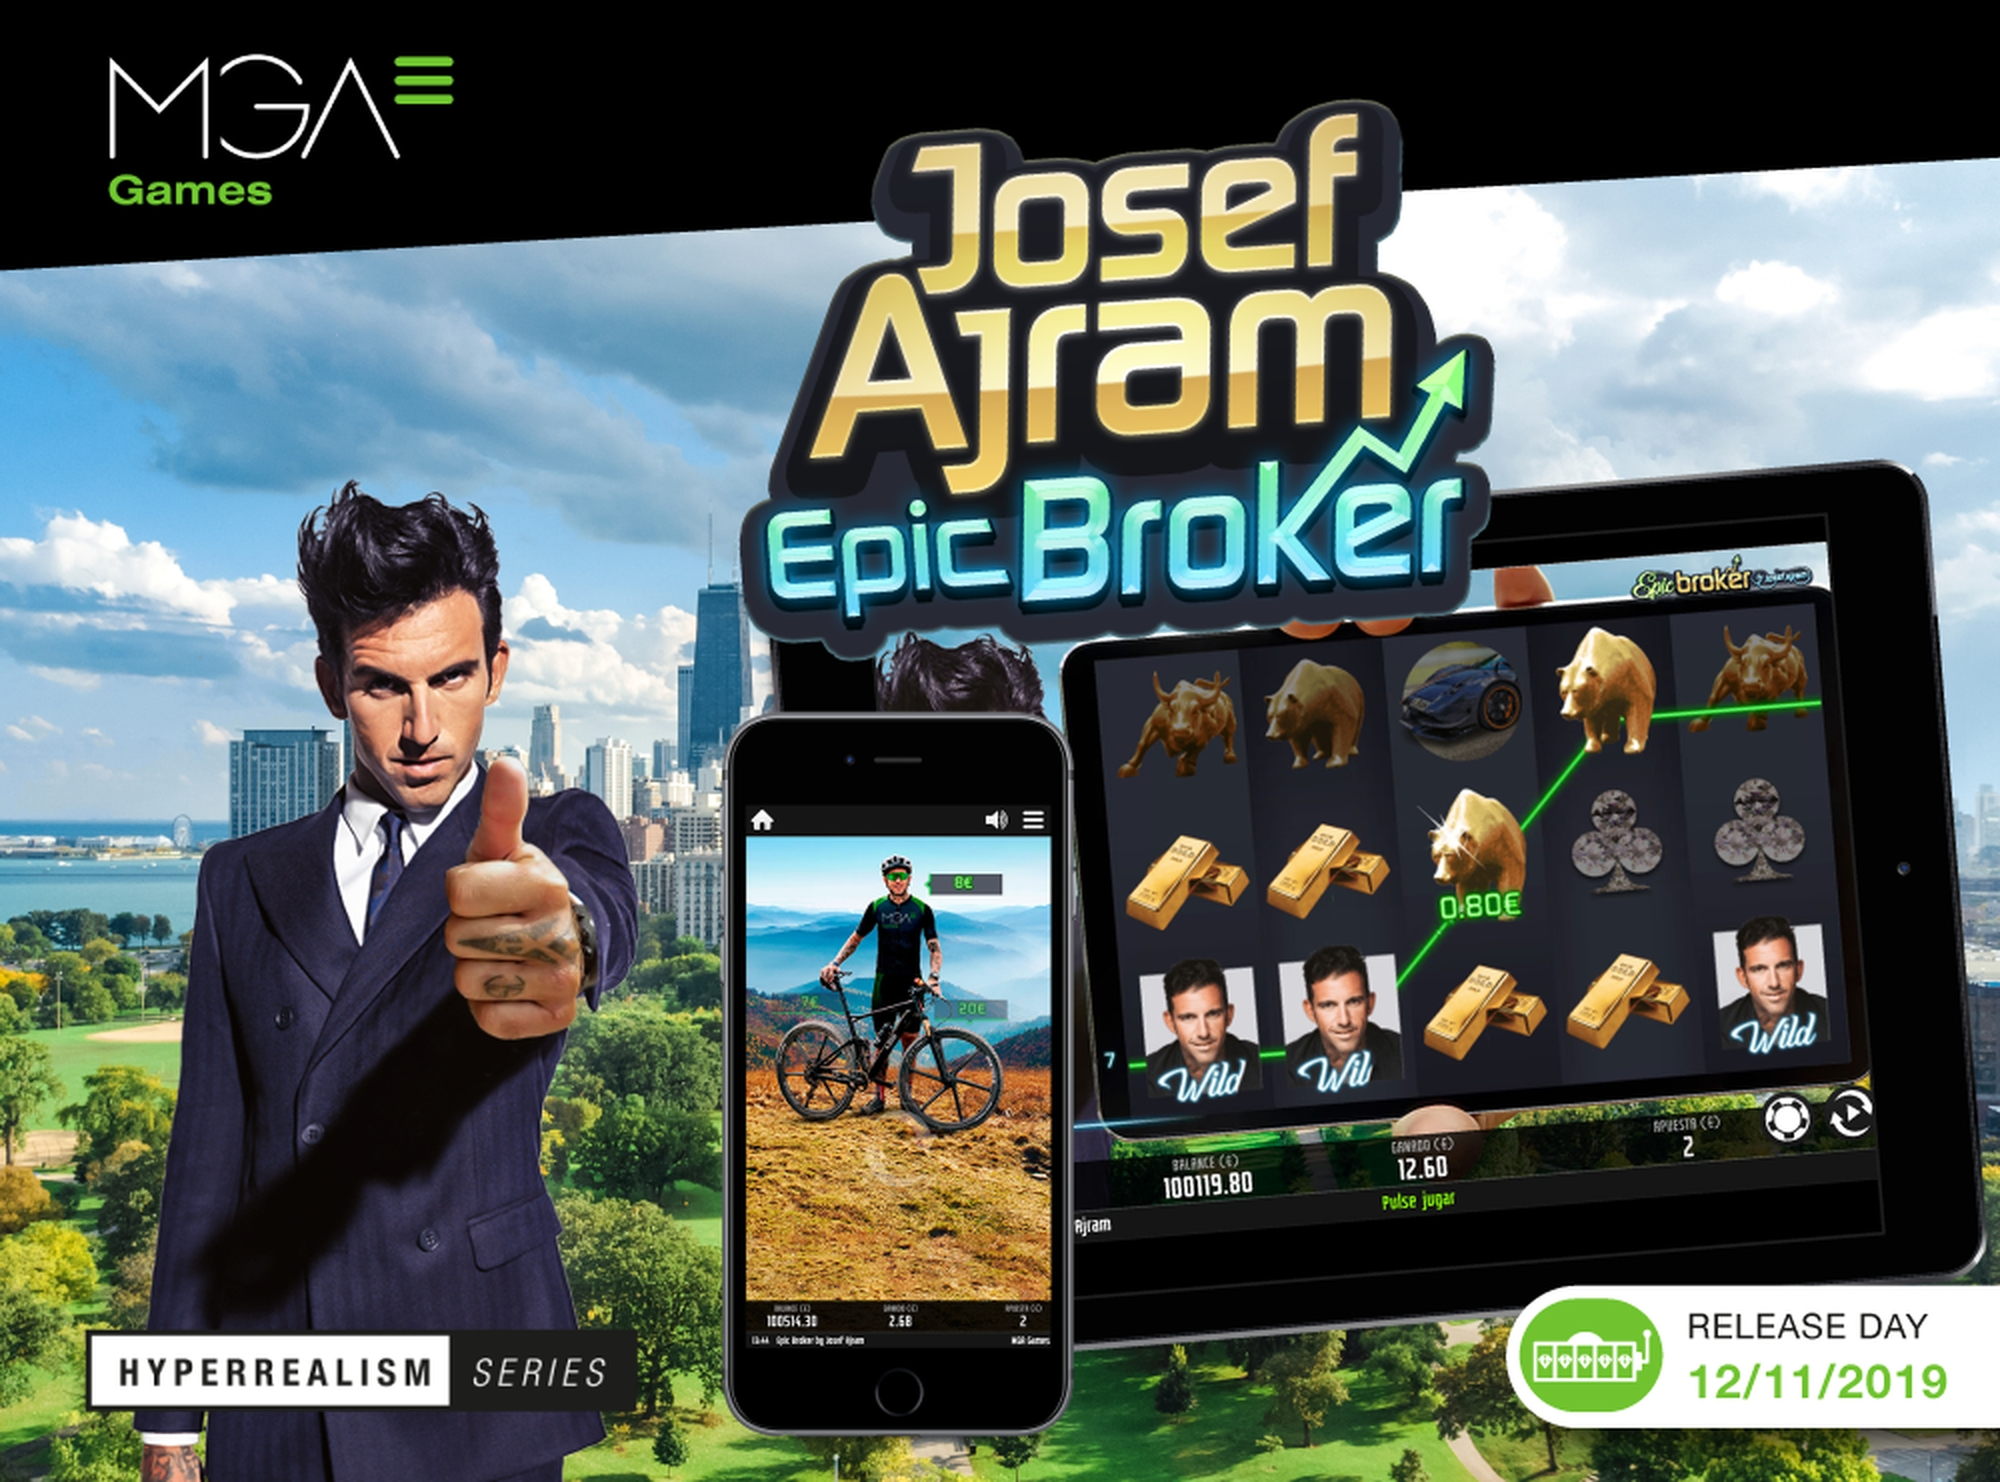 Josef Ajram Epic Broker Online Slot Demo Game by MGA